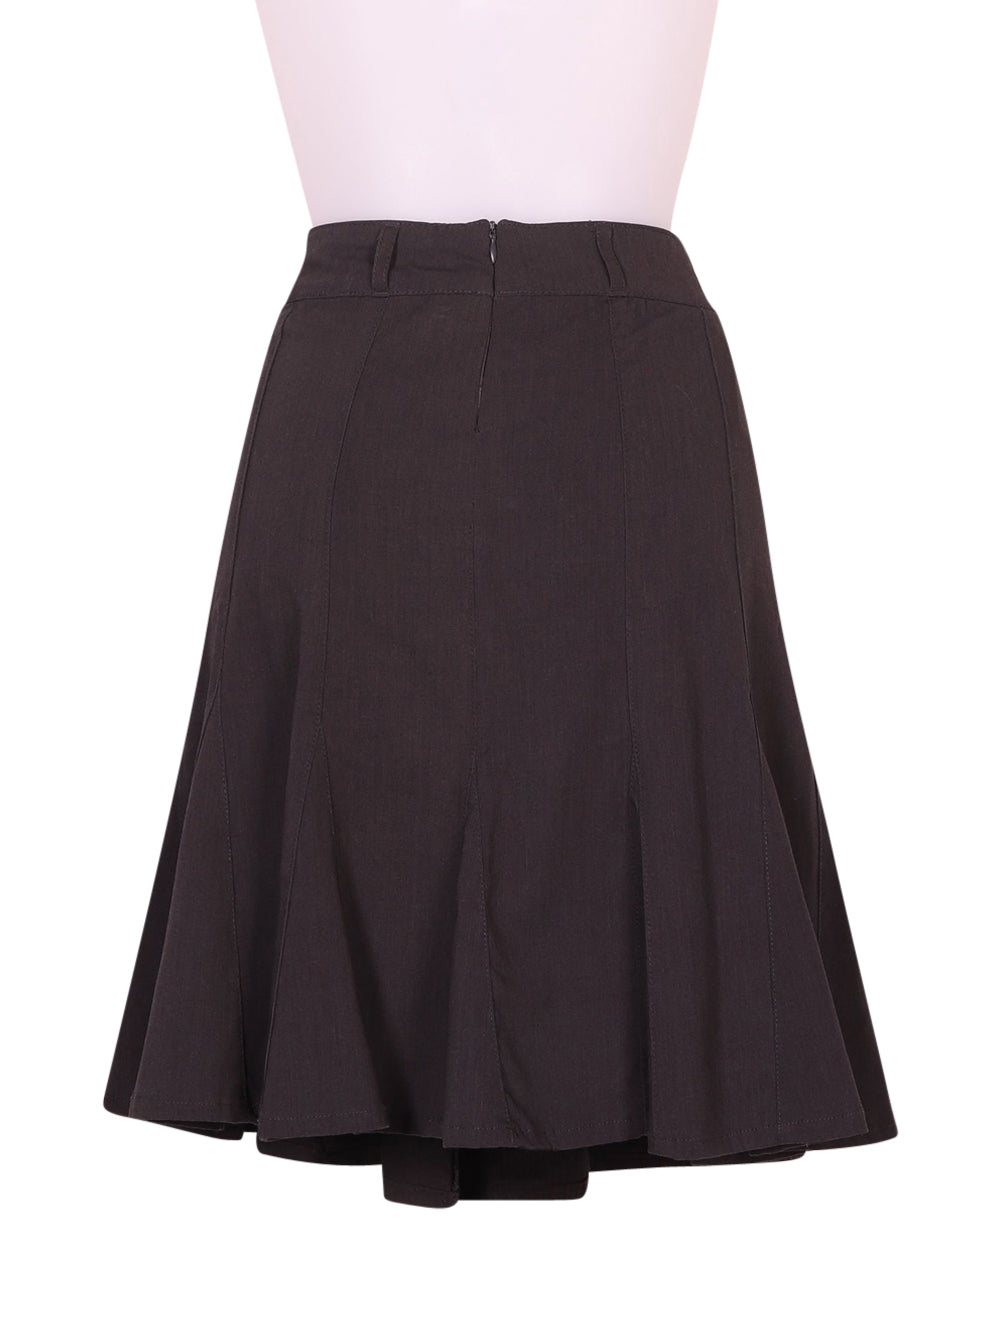 Back photo of Preloved ici et maintenant Grey Woman's skirt - size 10/M